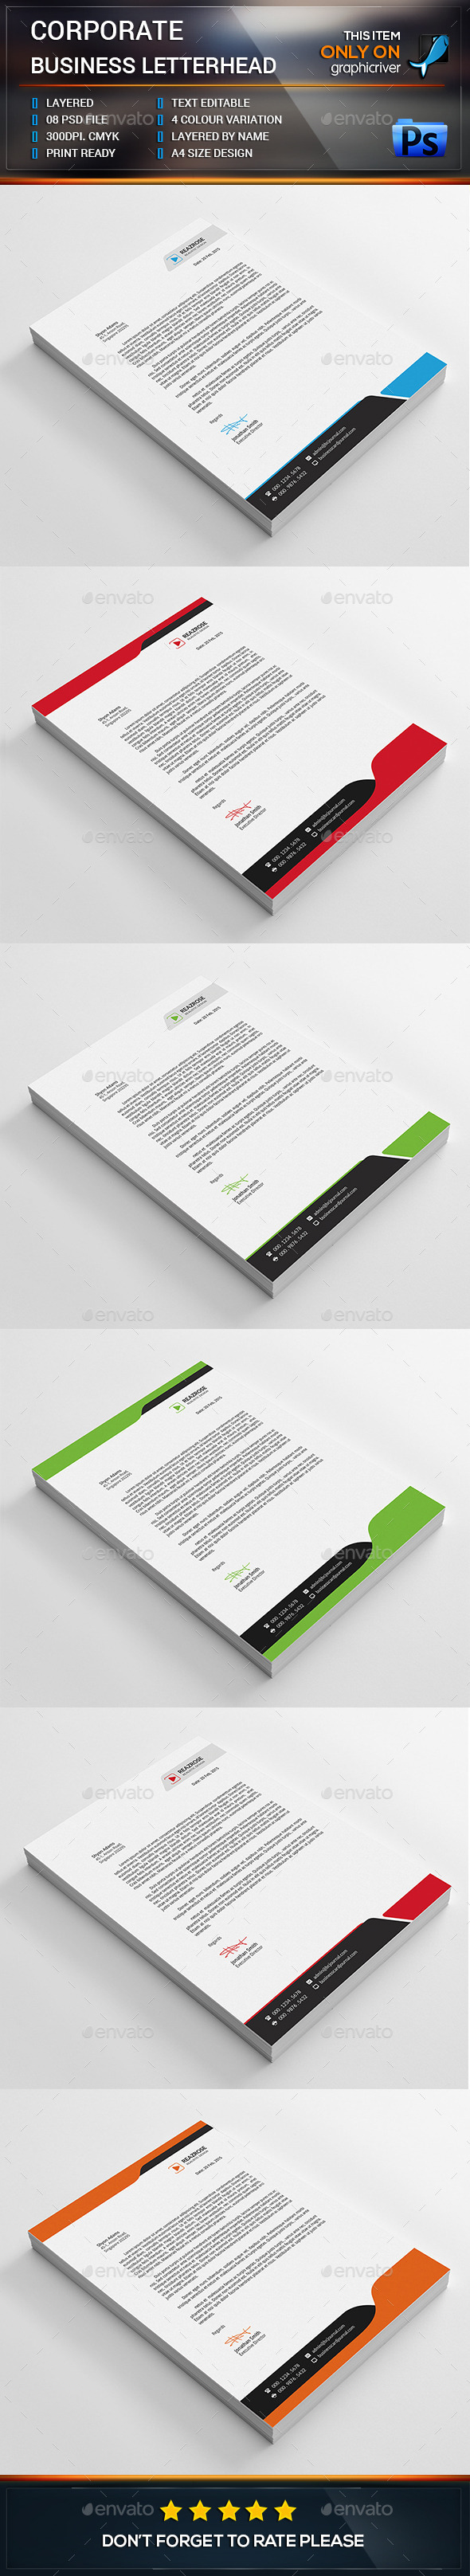 Corporate Business Letterhead Bundle  All Things Healthy